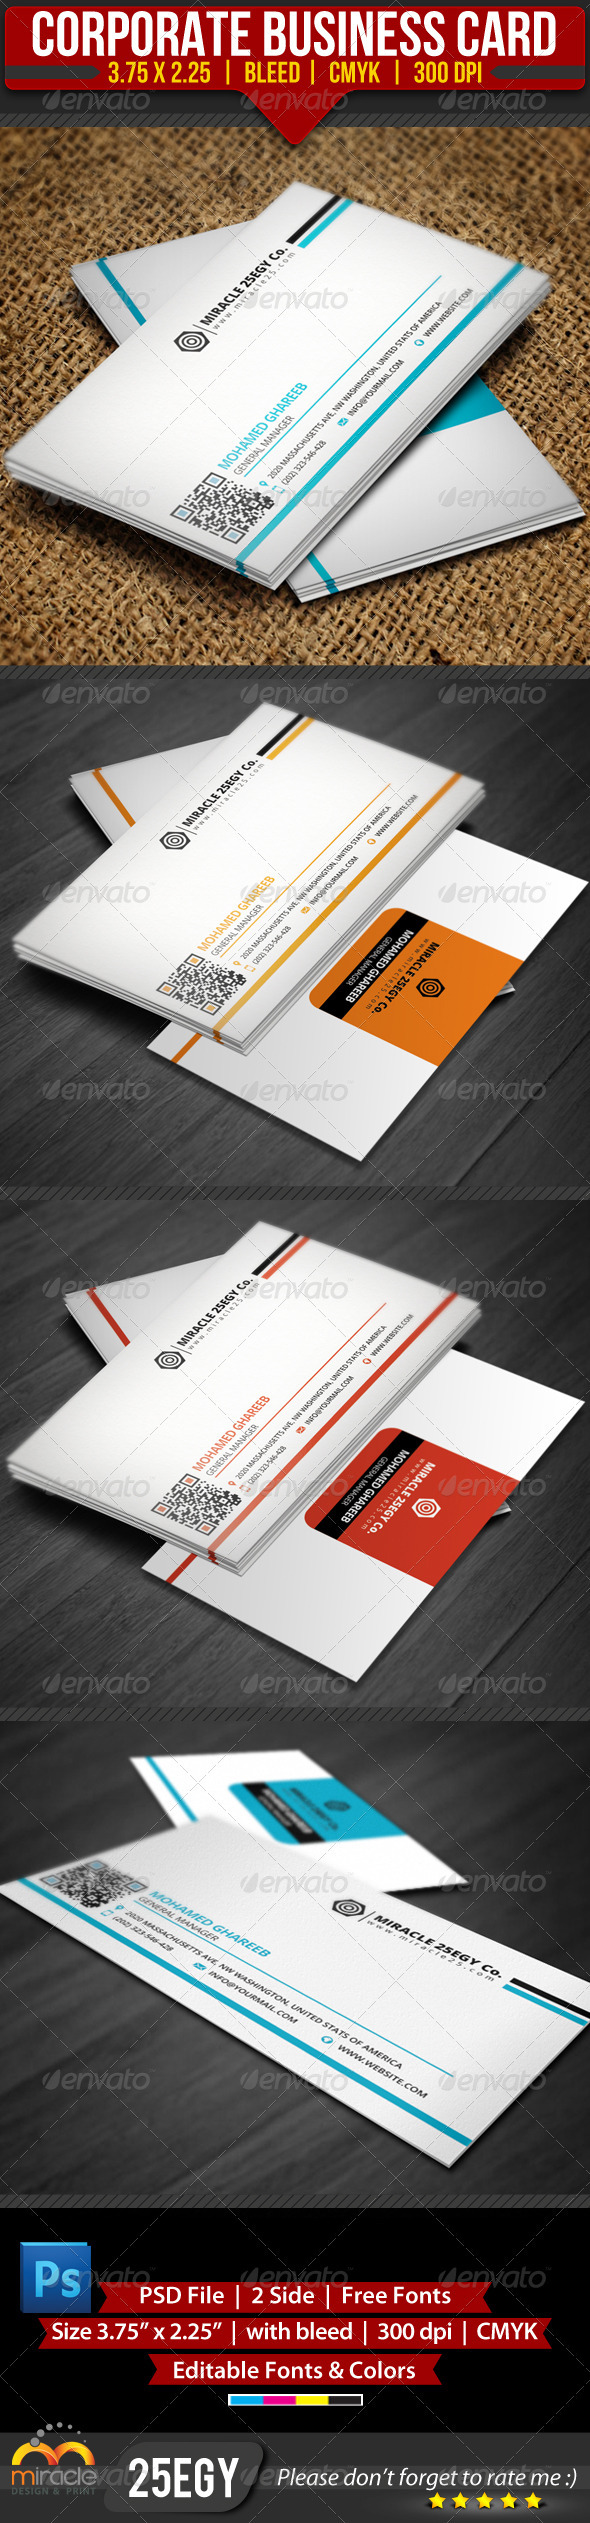 GraphicRiver Corporate Business Card 3553366